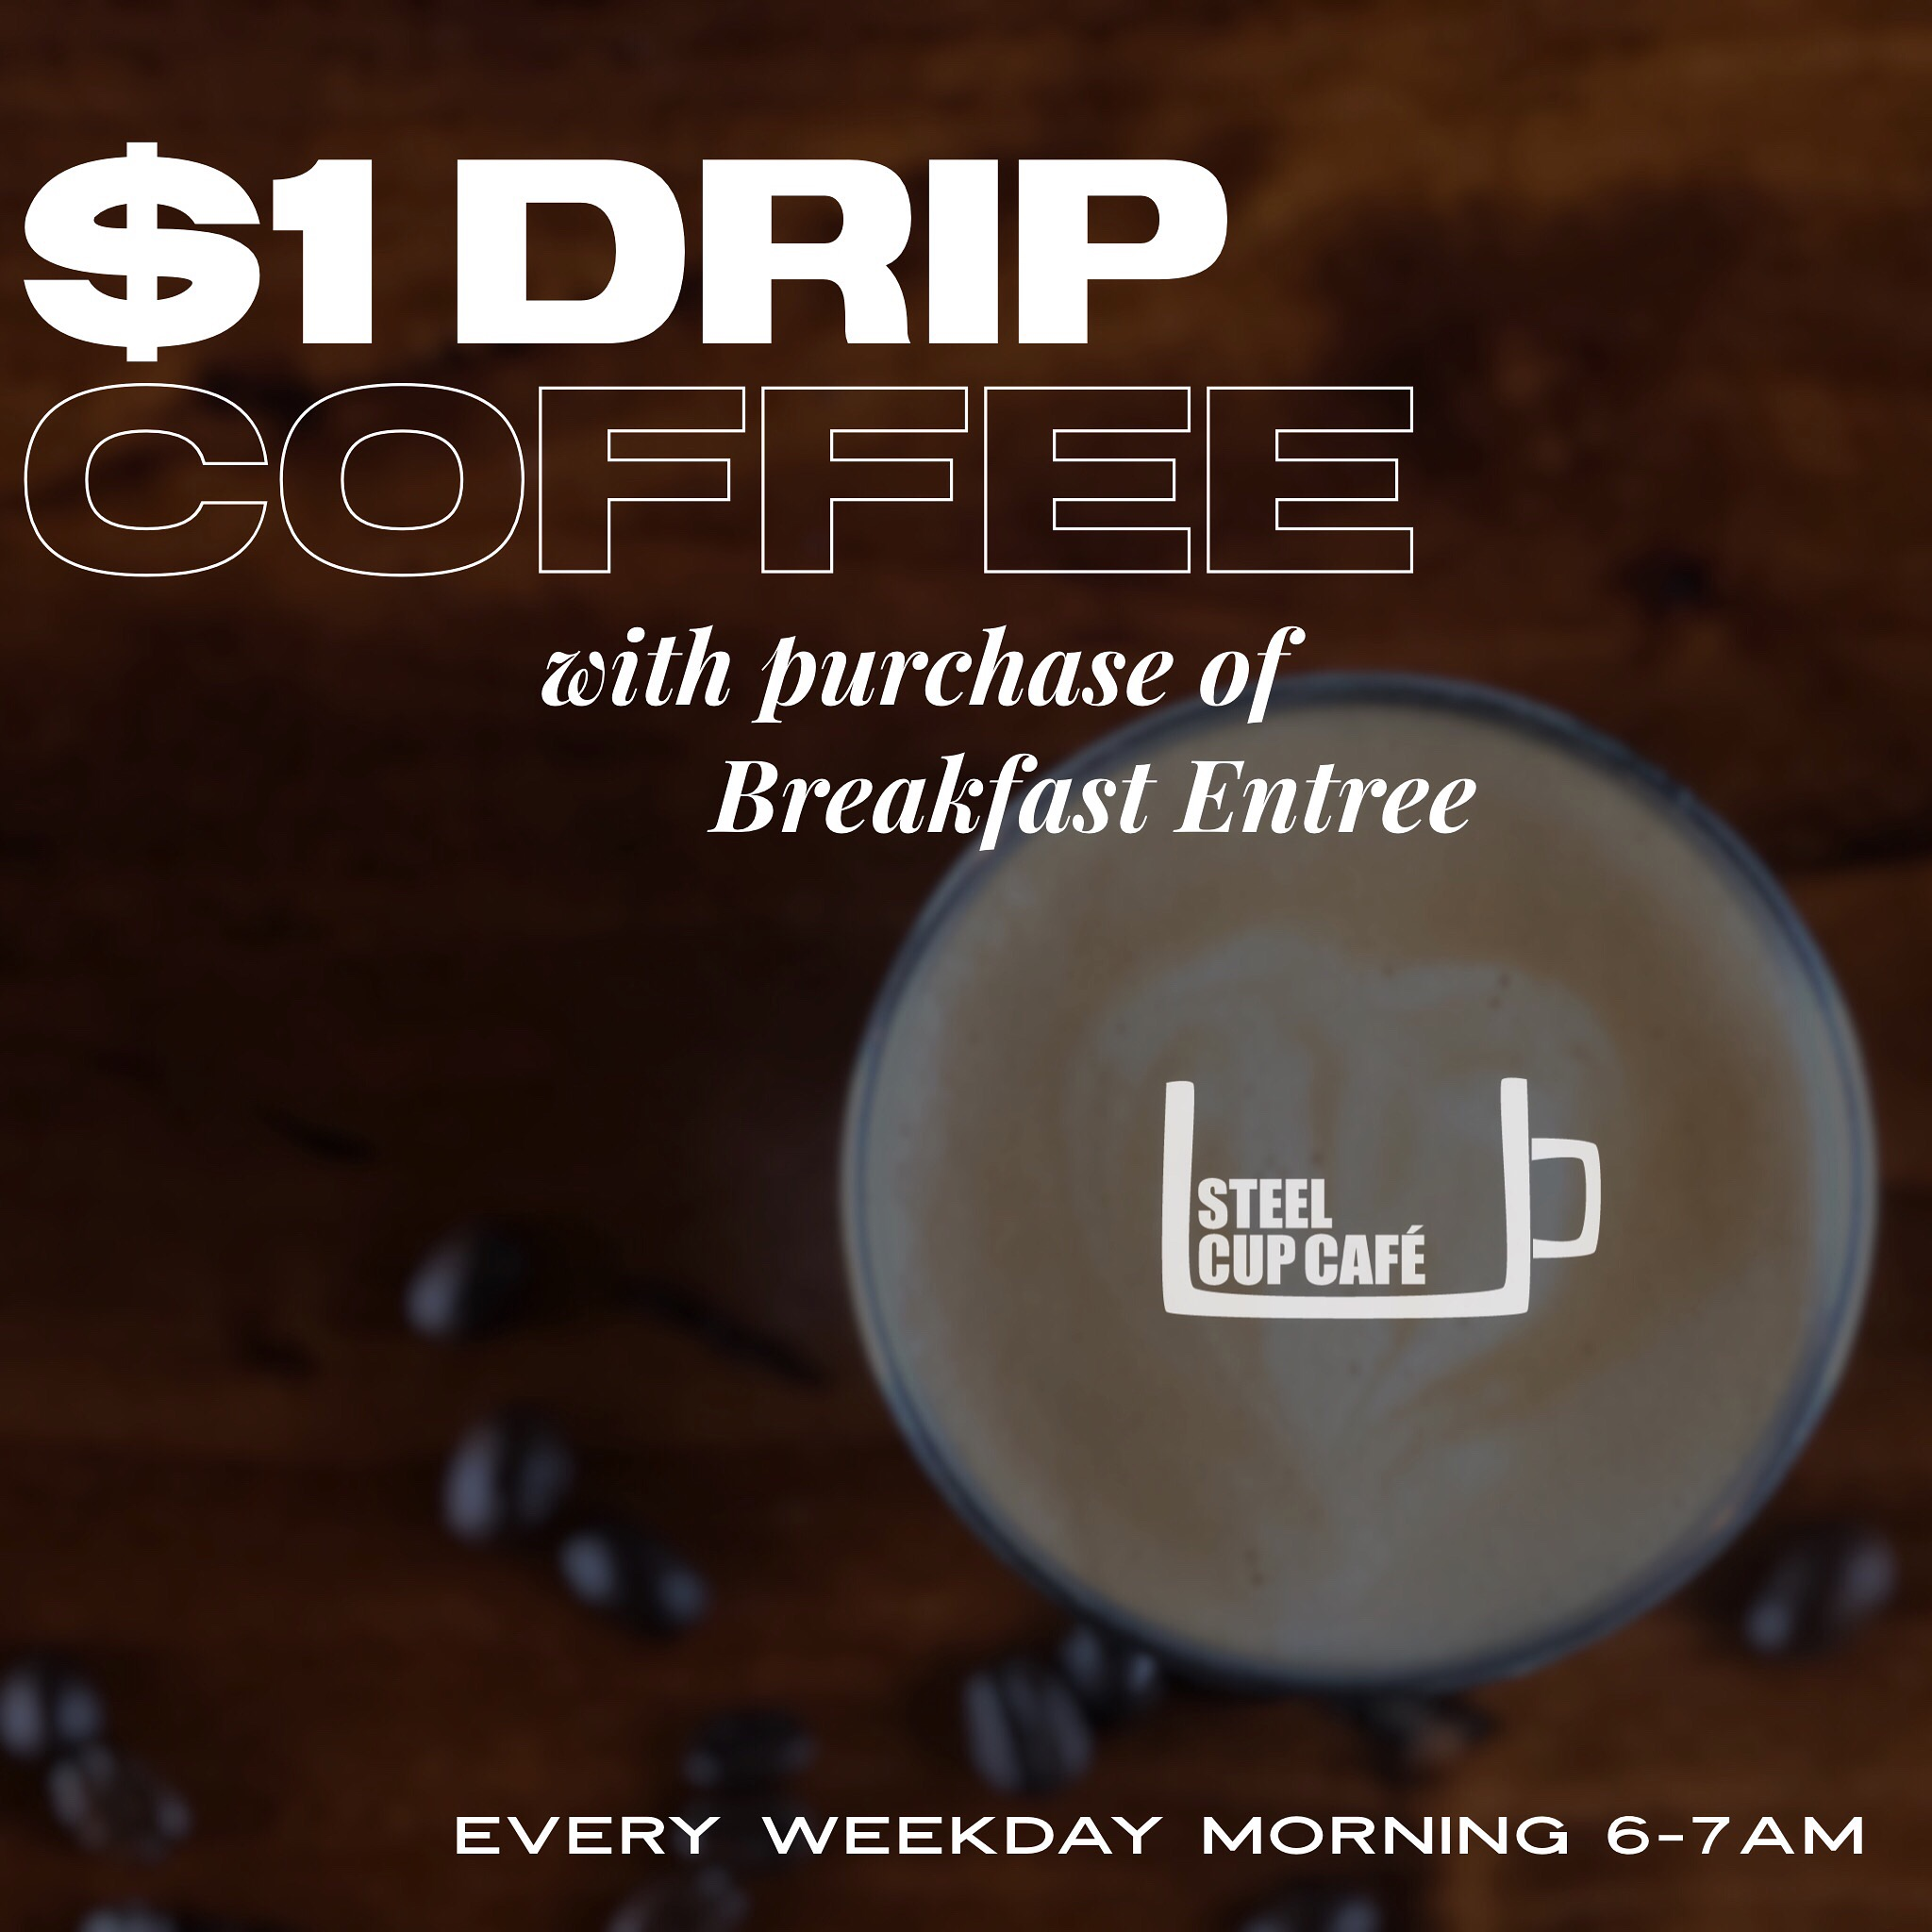 Early Morning Happy Hour - Drip coffee is just $1 with purchase of any breakfast entreeEvery weekday morning, 6am to 7am